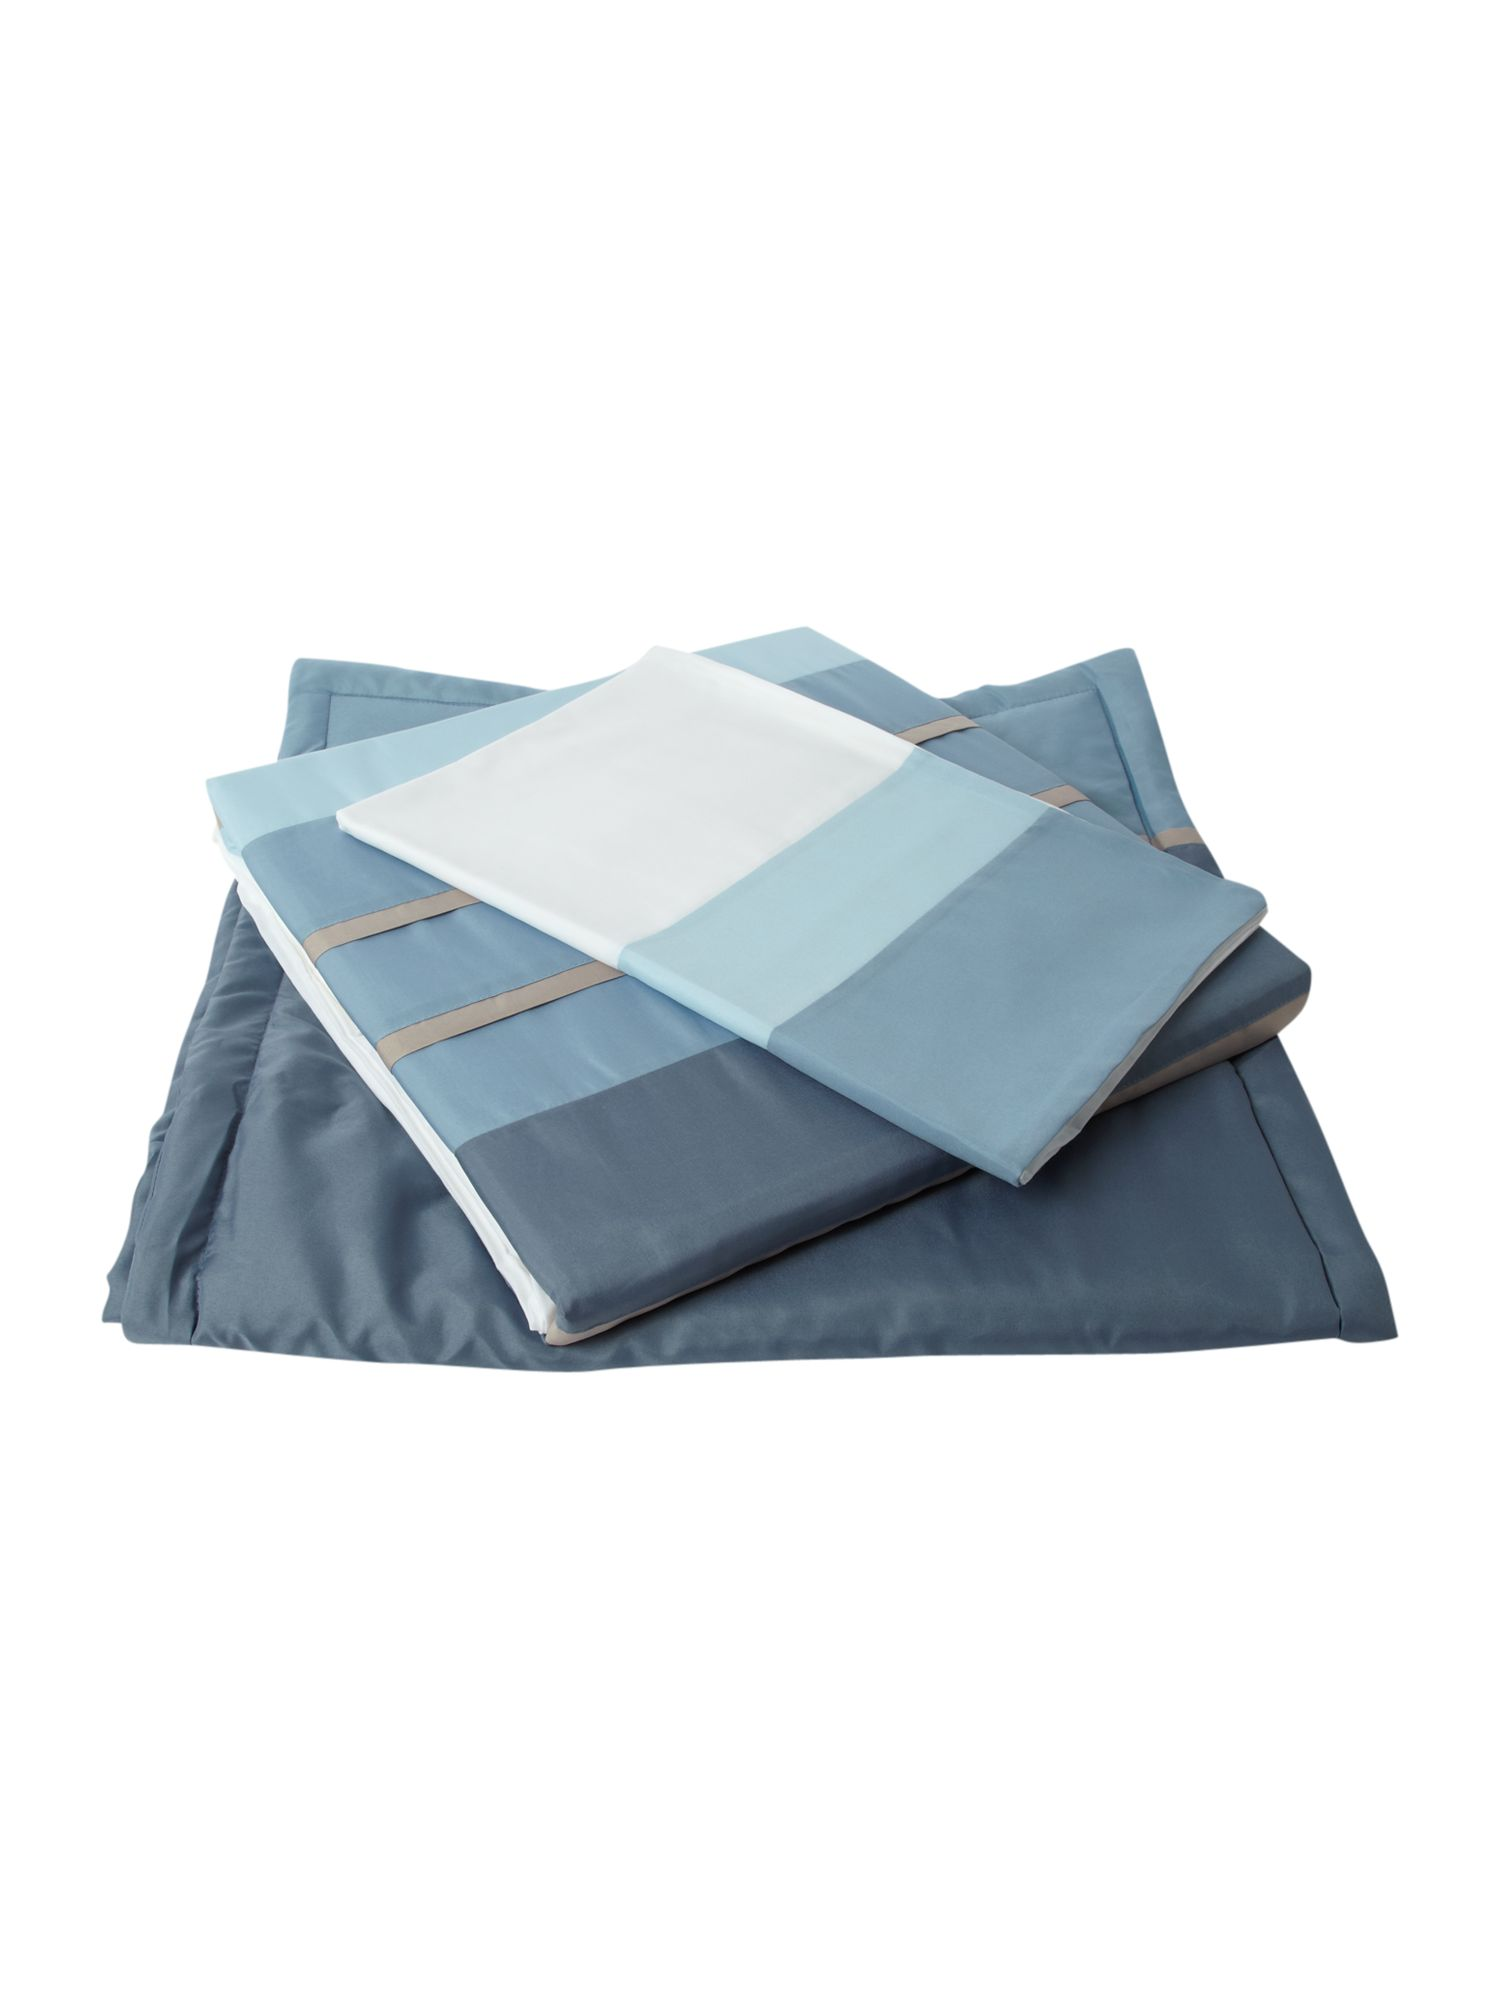 Tri band bed in a bag single duvet cover in blue